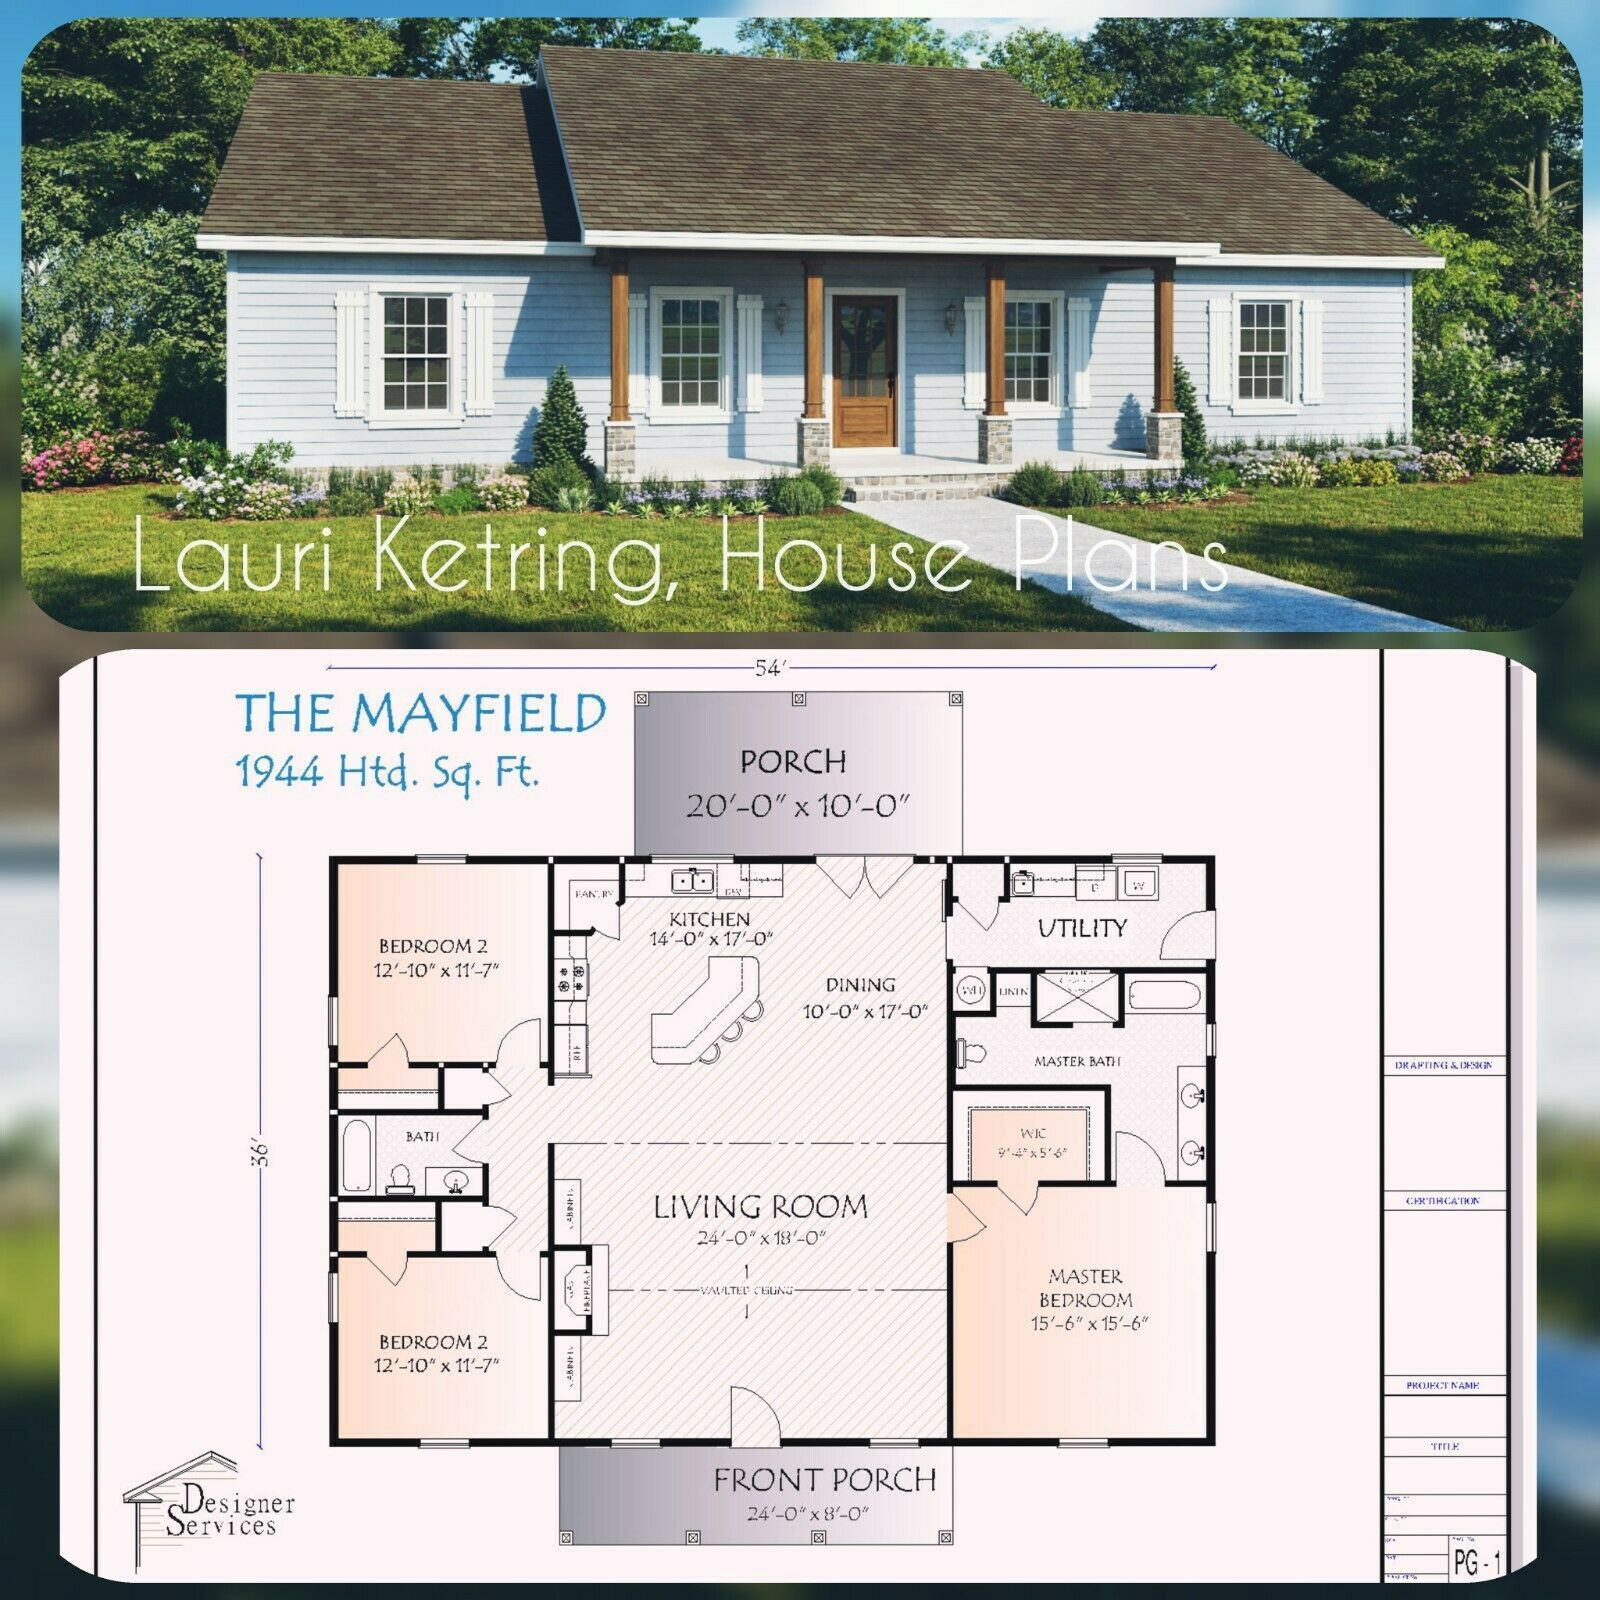 The Mayfield Custom House Home Building Plans 1944 Square Feet Building Plans House House Blueprints House Plans Farmhouse